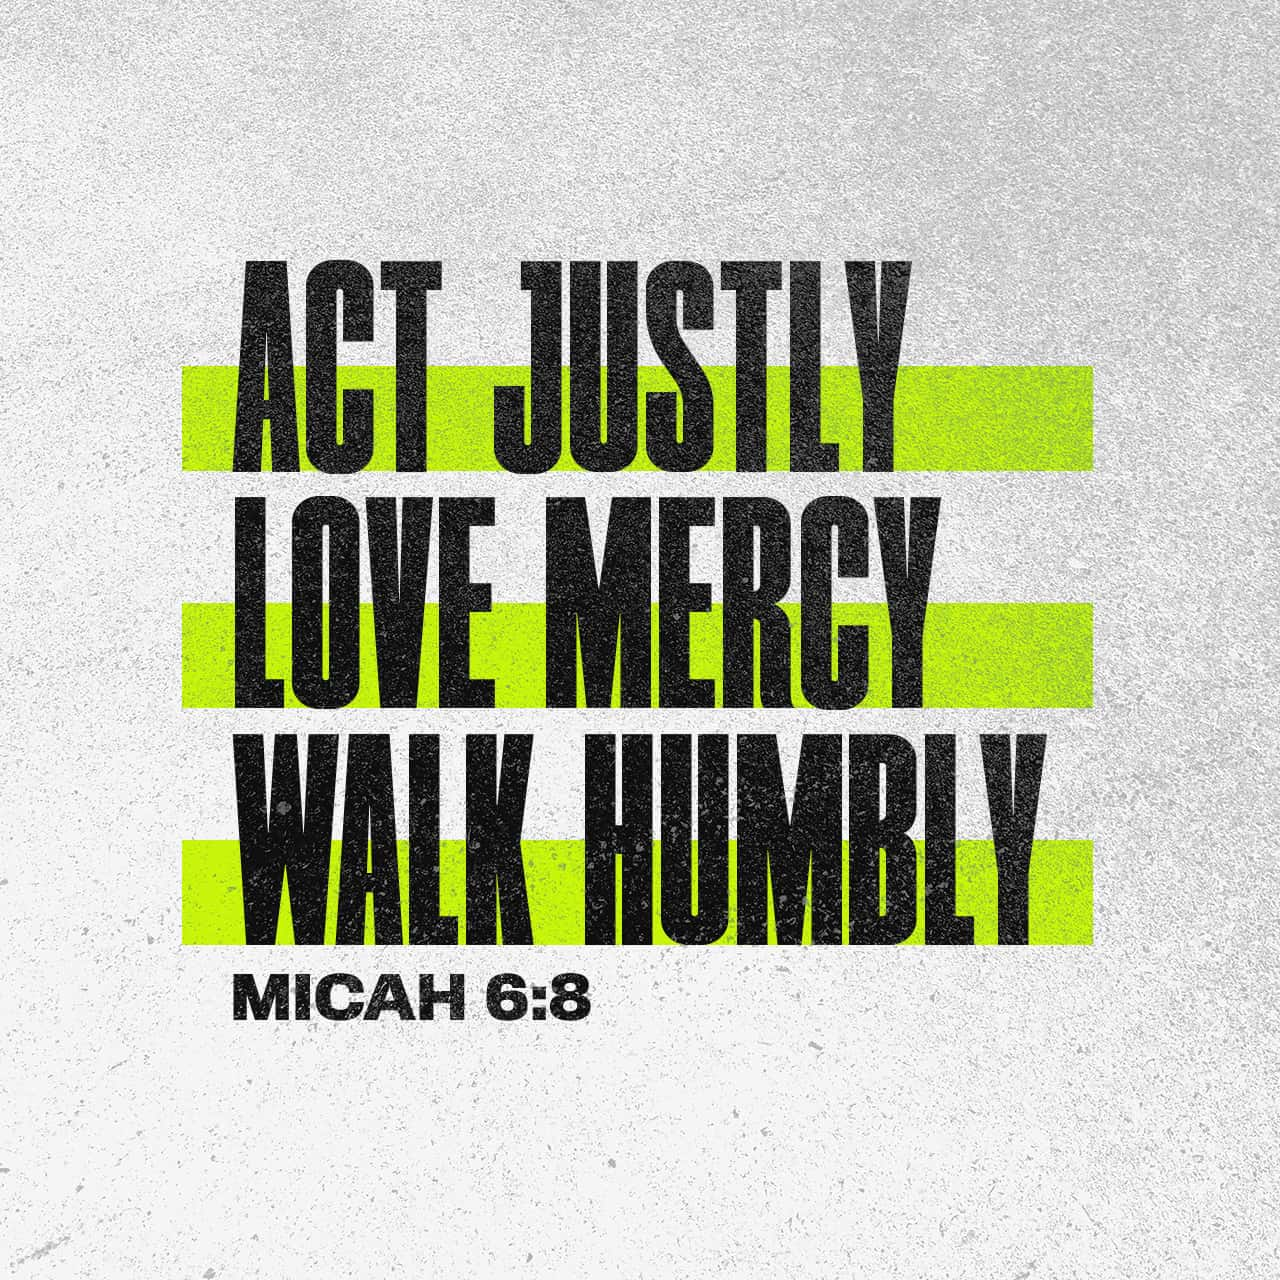 Act Justly. Love Mercy, Walk Humbly. - Micah 6:8 - Verse Image